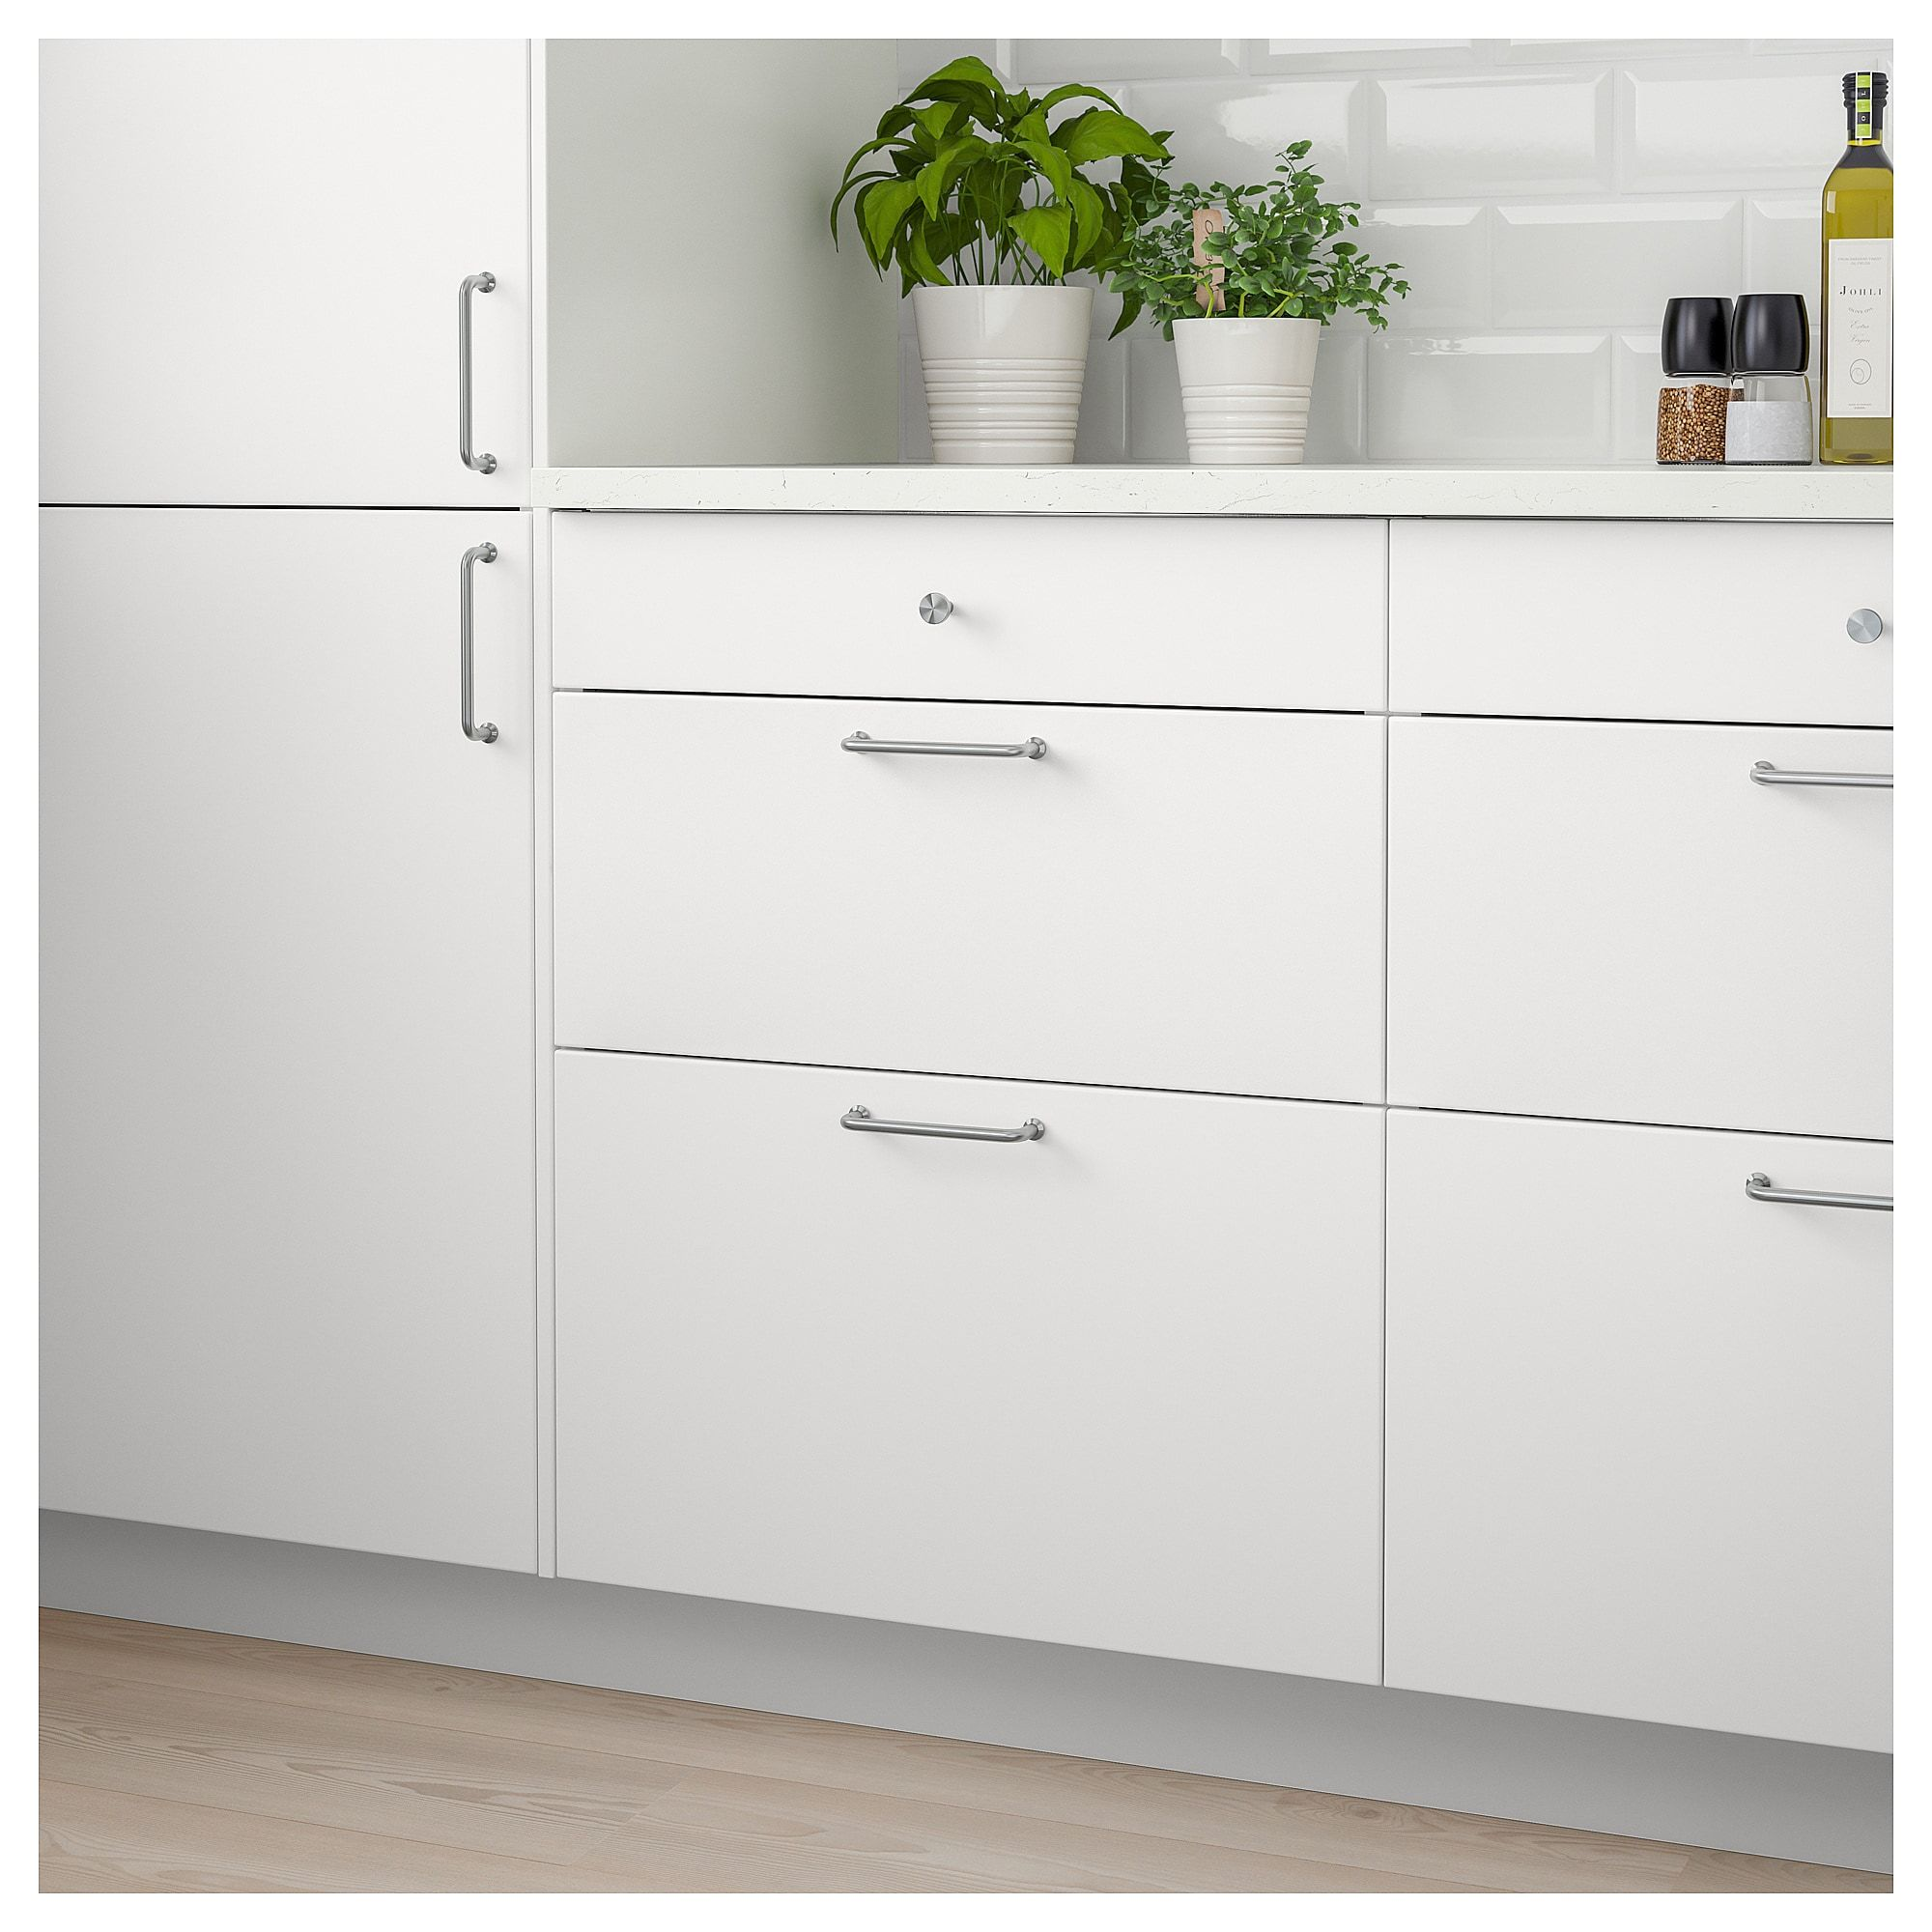 Veddinge Drawer Front White Ikea Ca Ikea In 2021 Drawer Fronts Cleaning Clothes Drawers